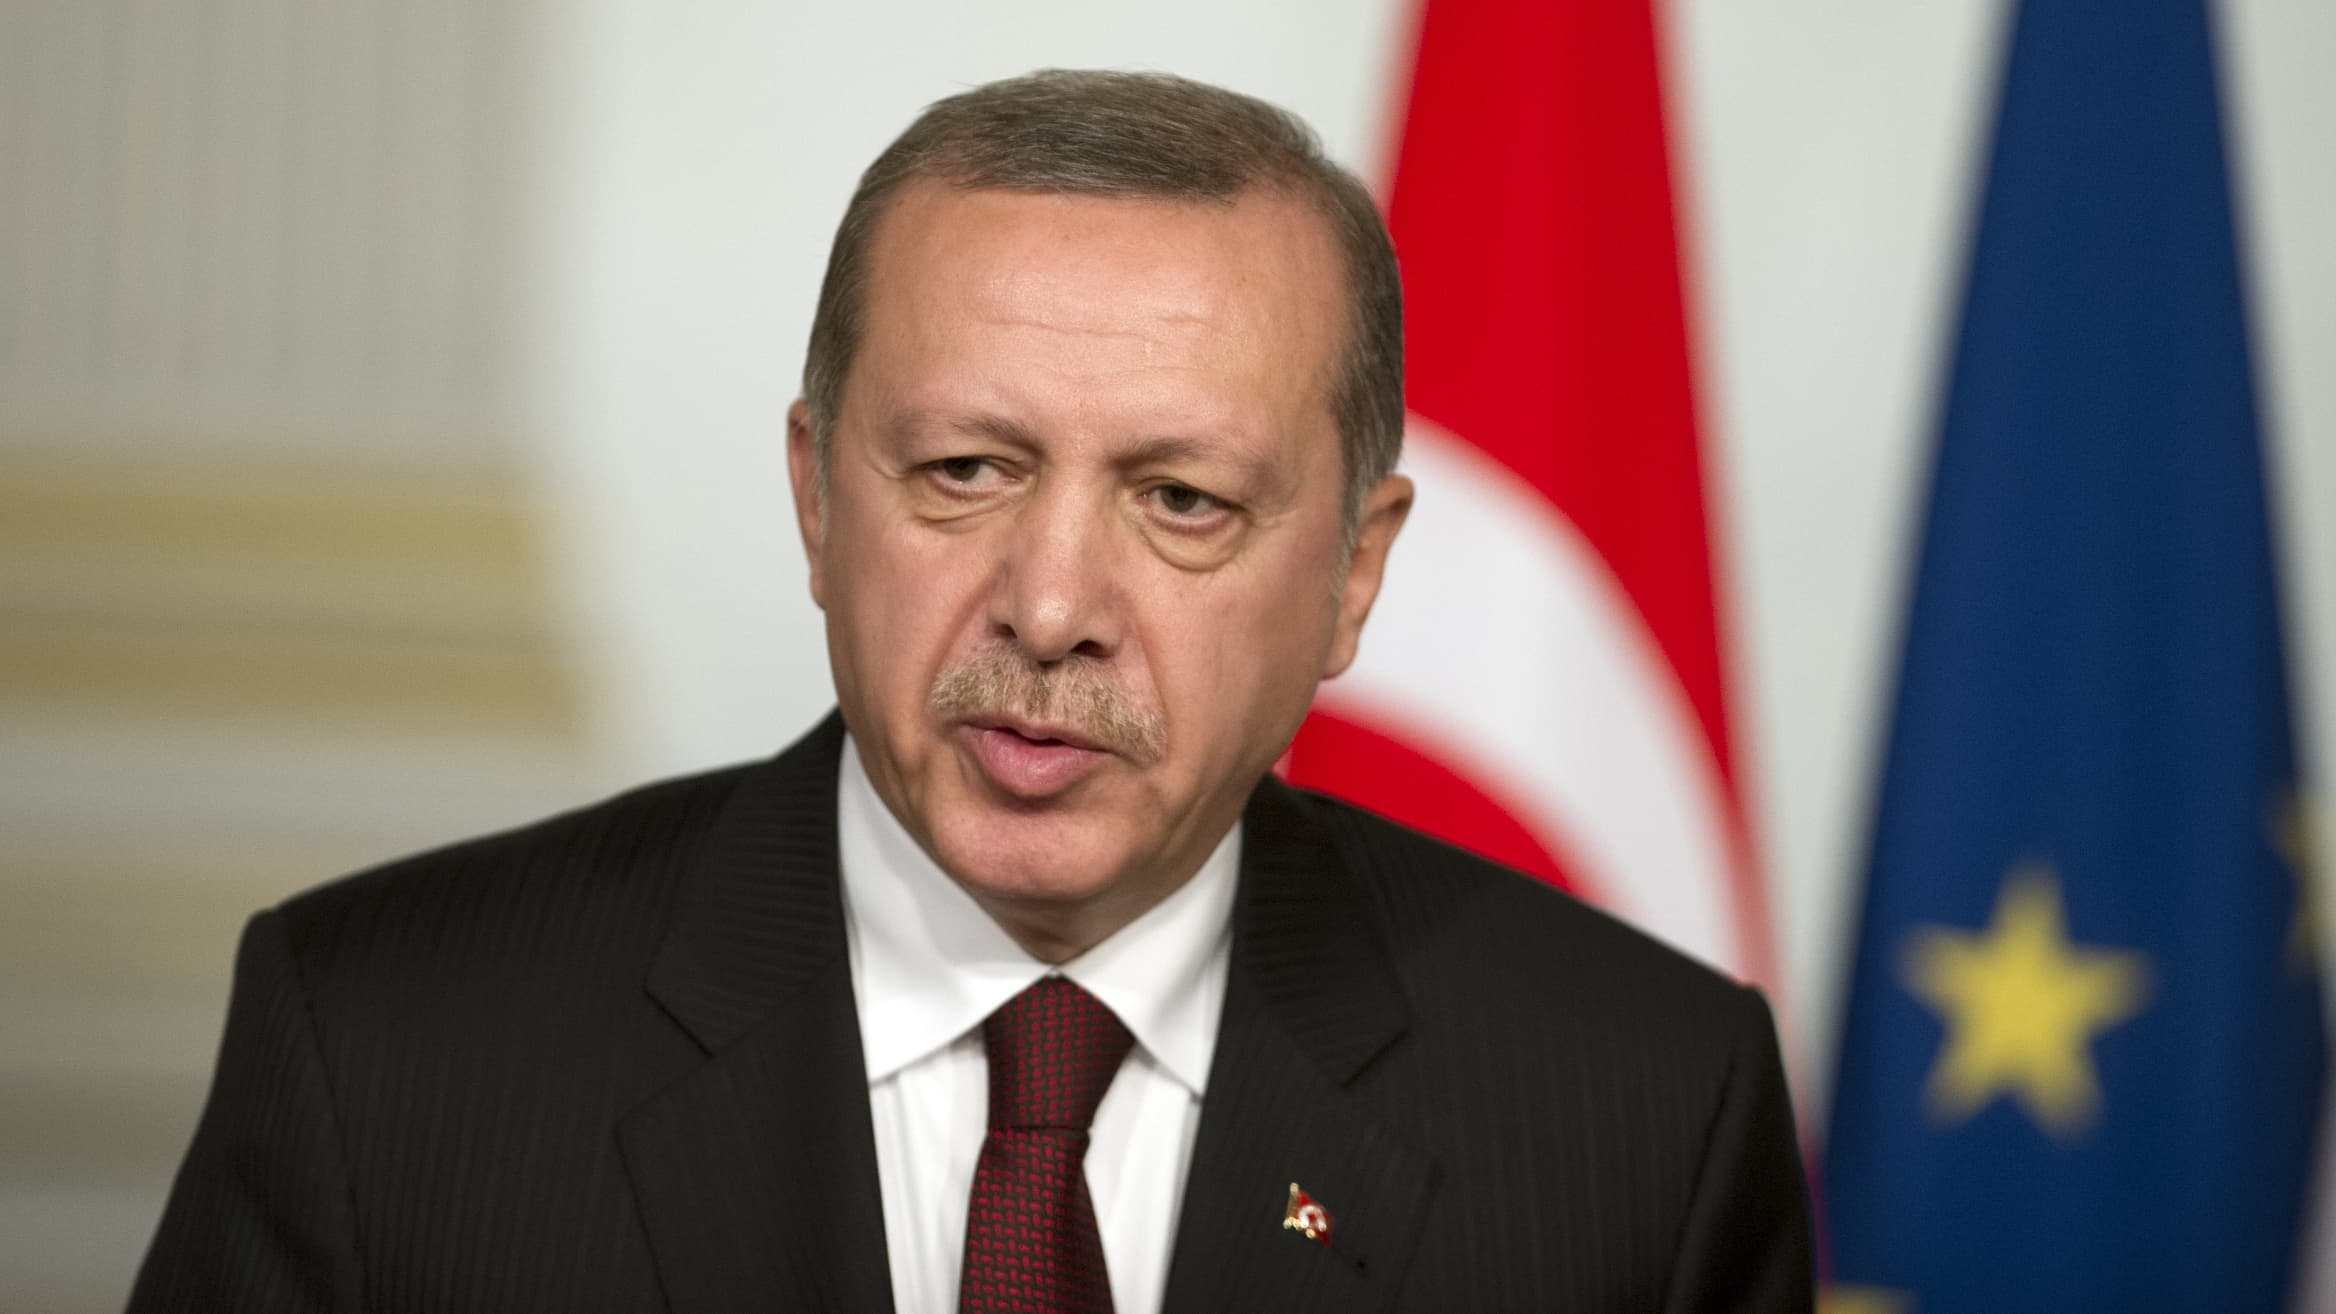 Sainte-Sophie: Erdogan rejette en bloc les condamnations internationales